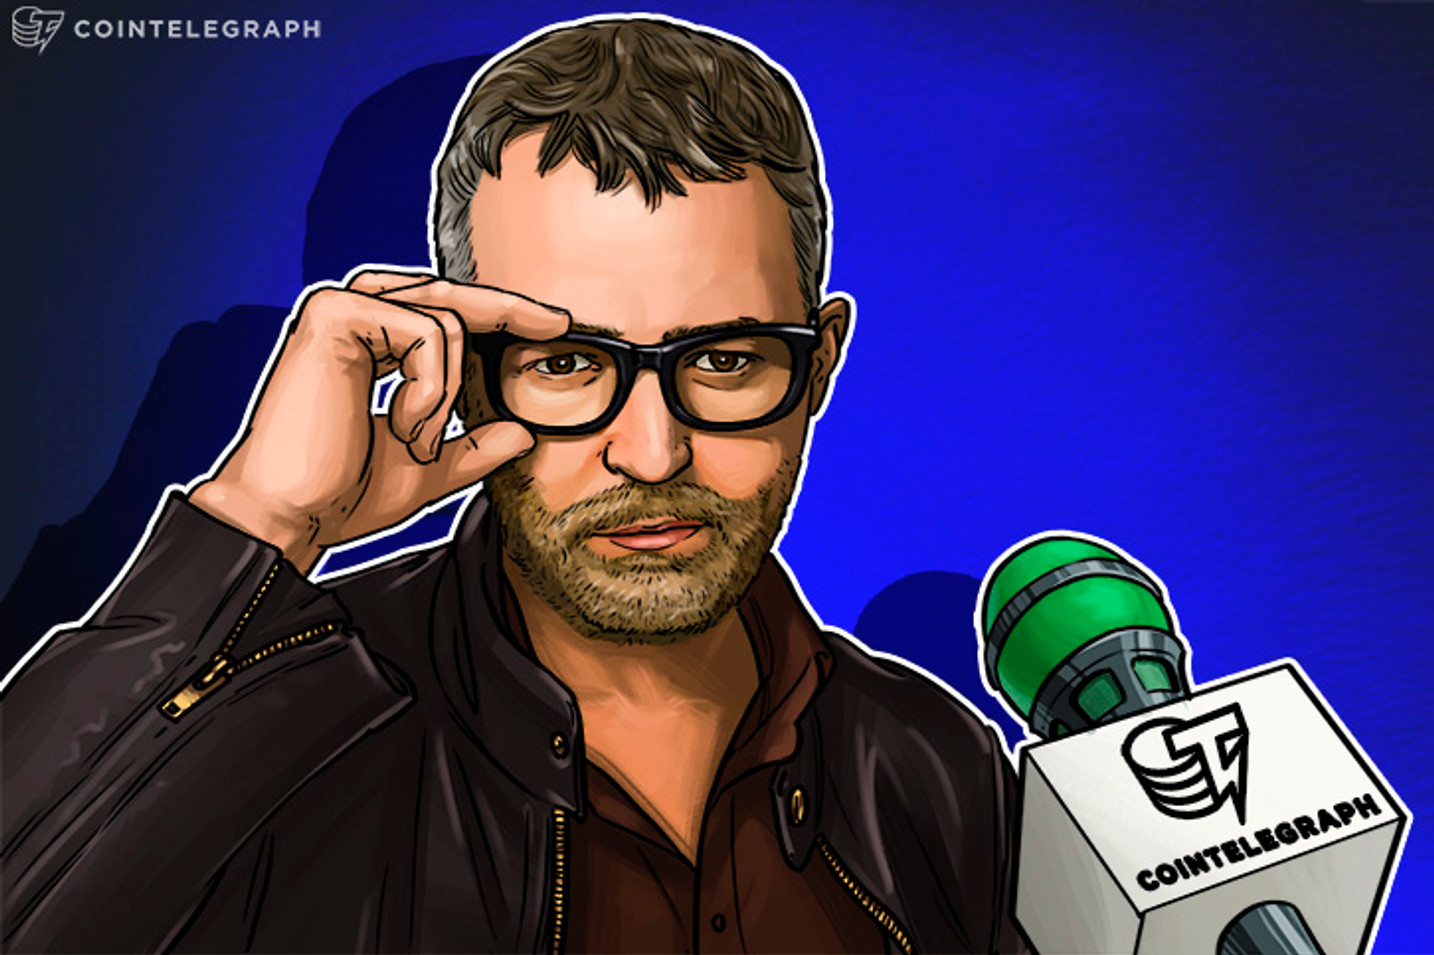 Media's Role in Blockchain and Crypto, Interview With TechCrunch's Mike Butcher